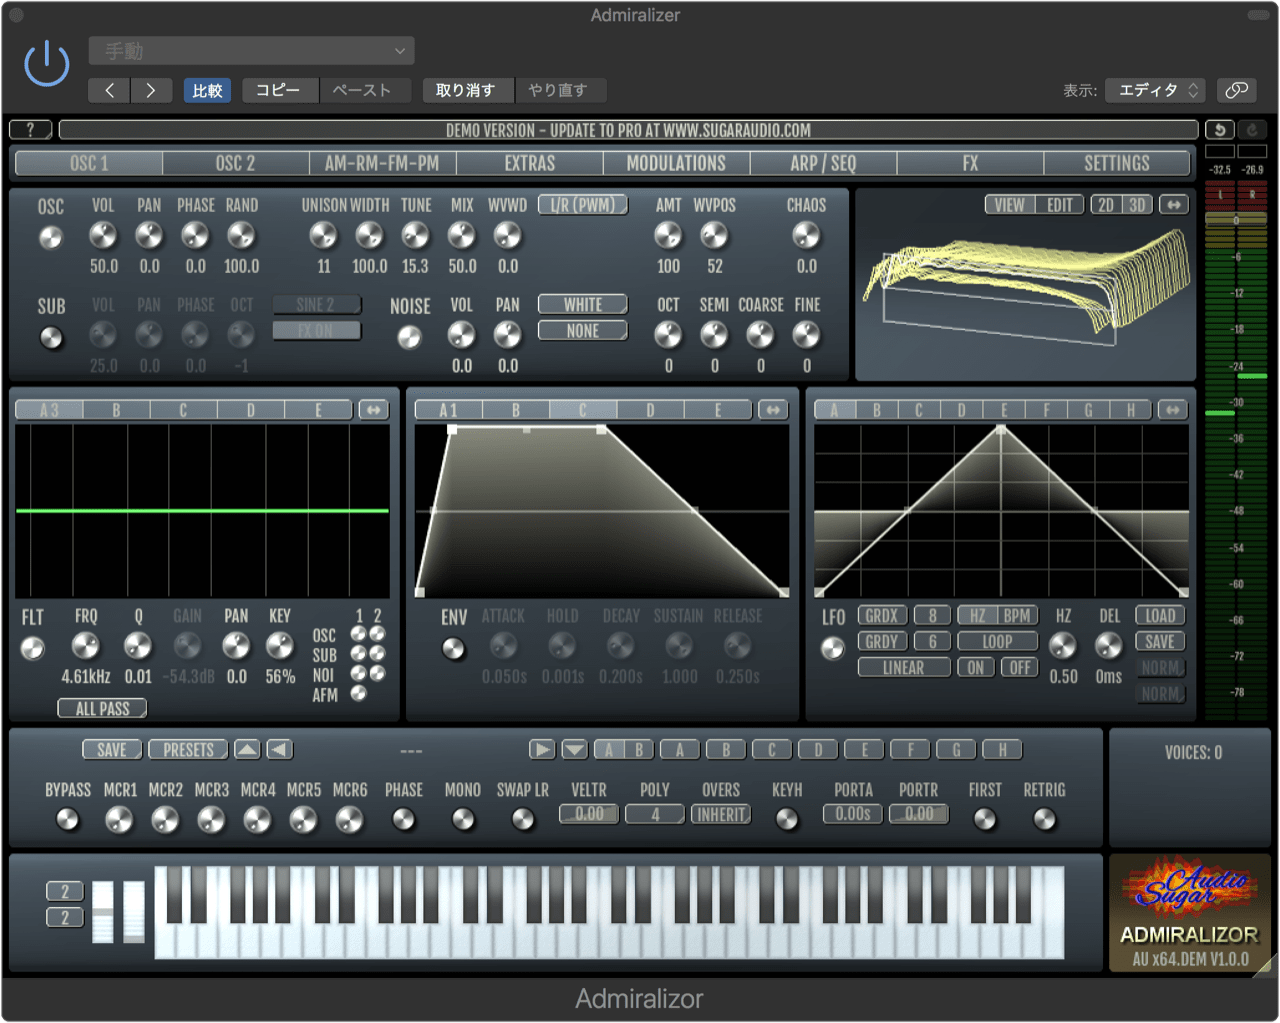 Admiralizor – Wavetable Multi Operator Synthesizer Audio Plug-In | Sugar Audio